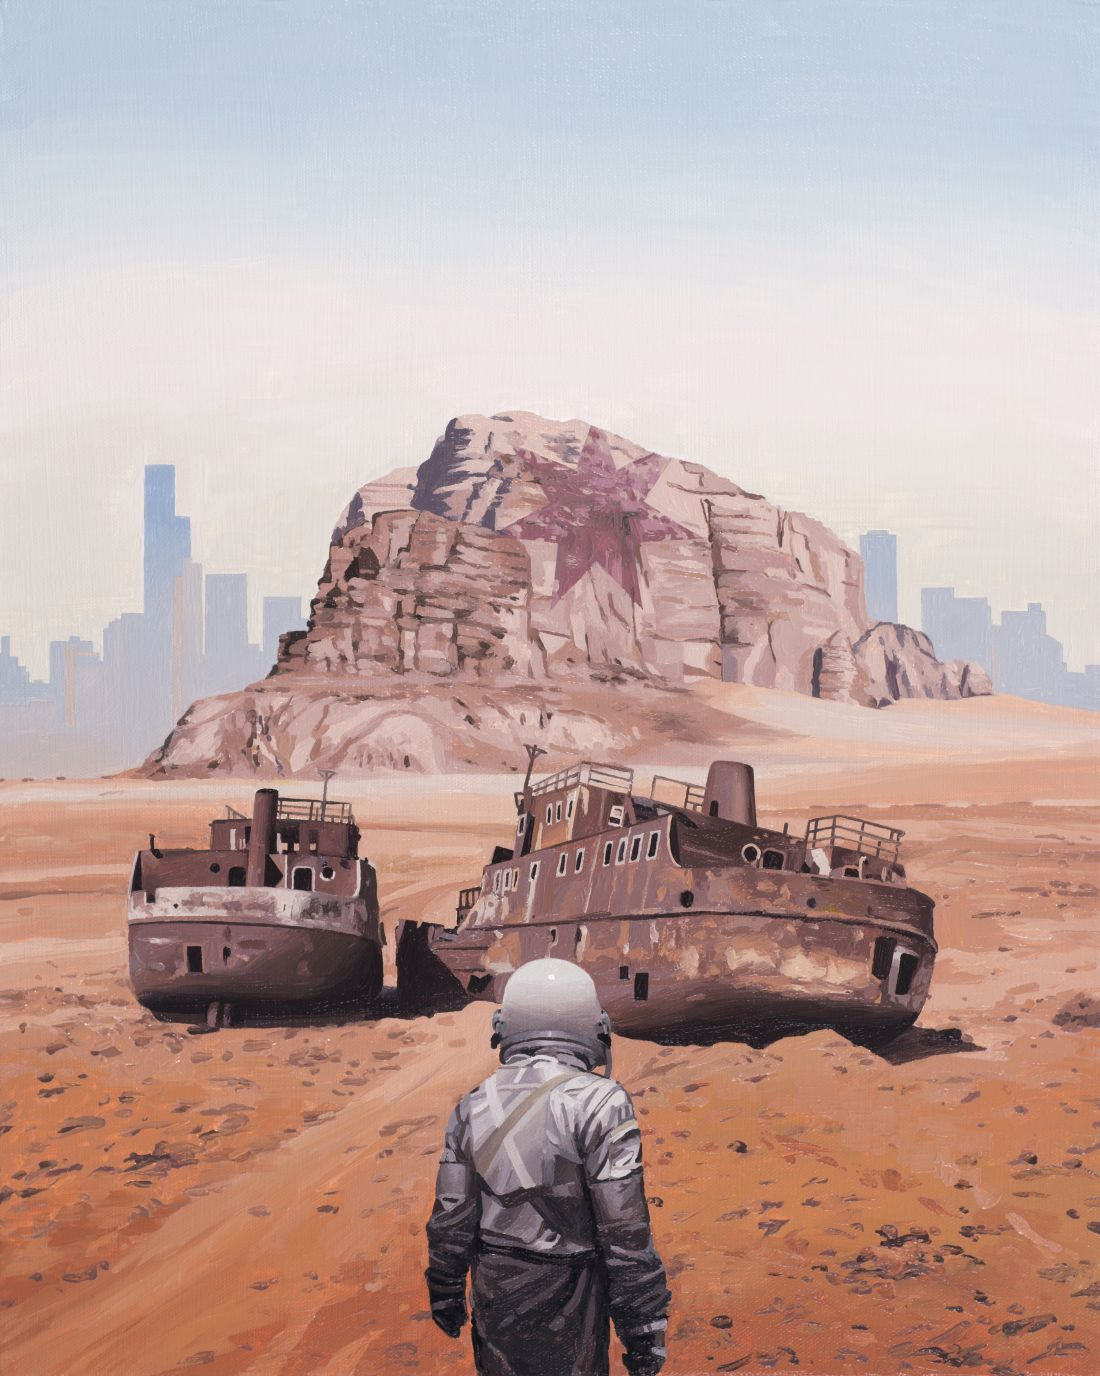 Scott Listfield's new 'Mad Max' inspired paintings of an astronaut exploring an apocalyptic Australia